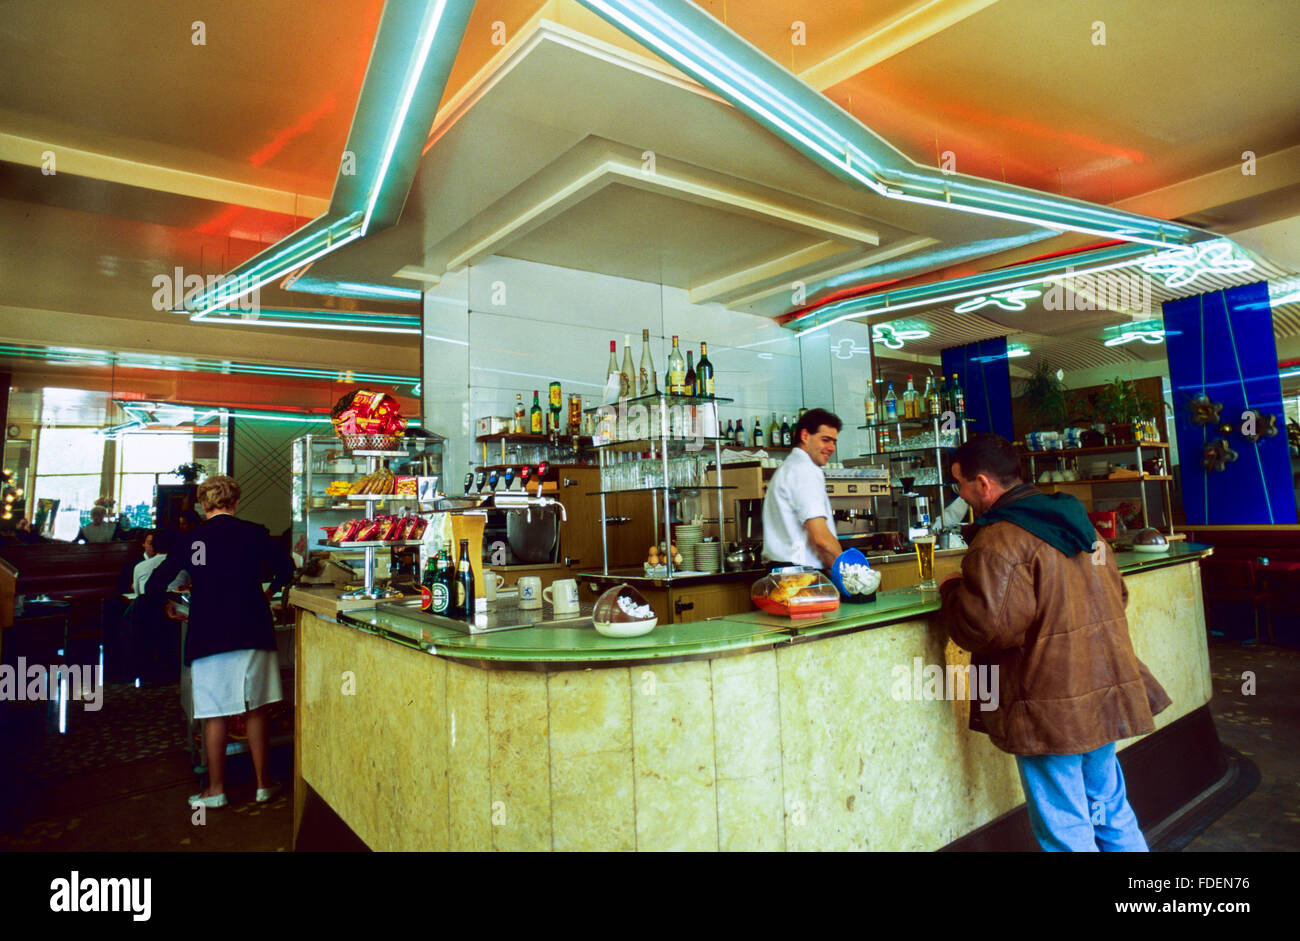 Cafe 1950s Retro Stock Photos & Cafe 1950s Retro Stock Images - Alamy